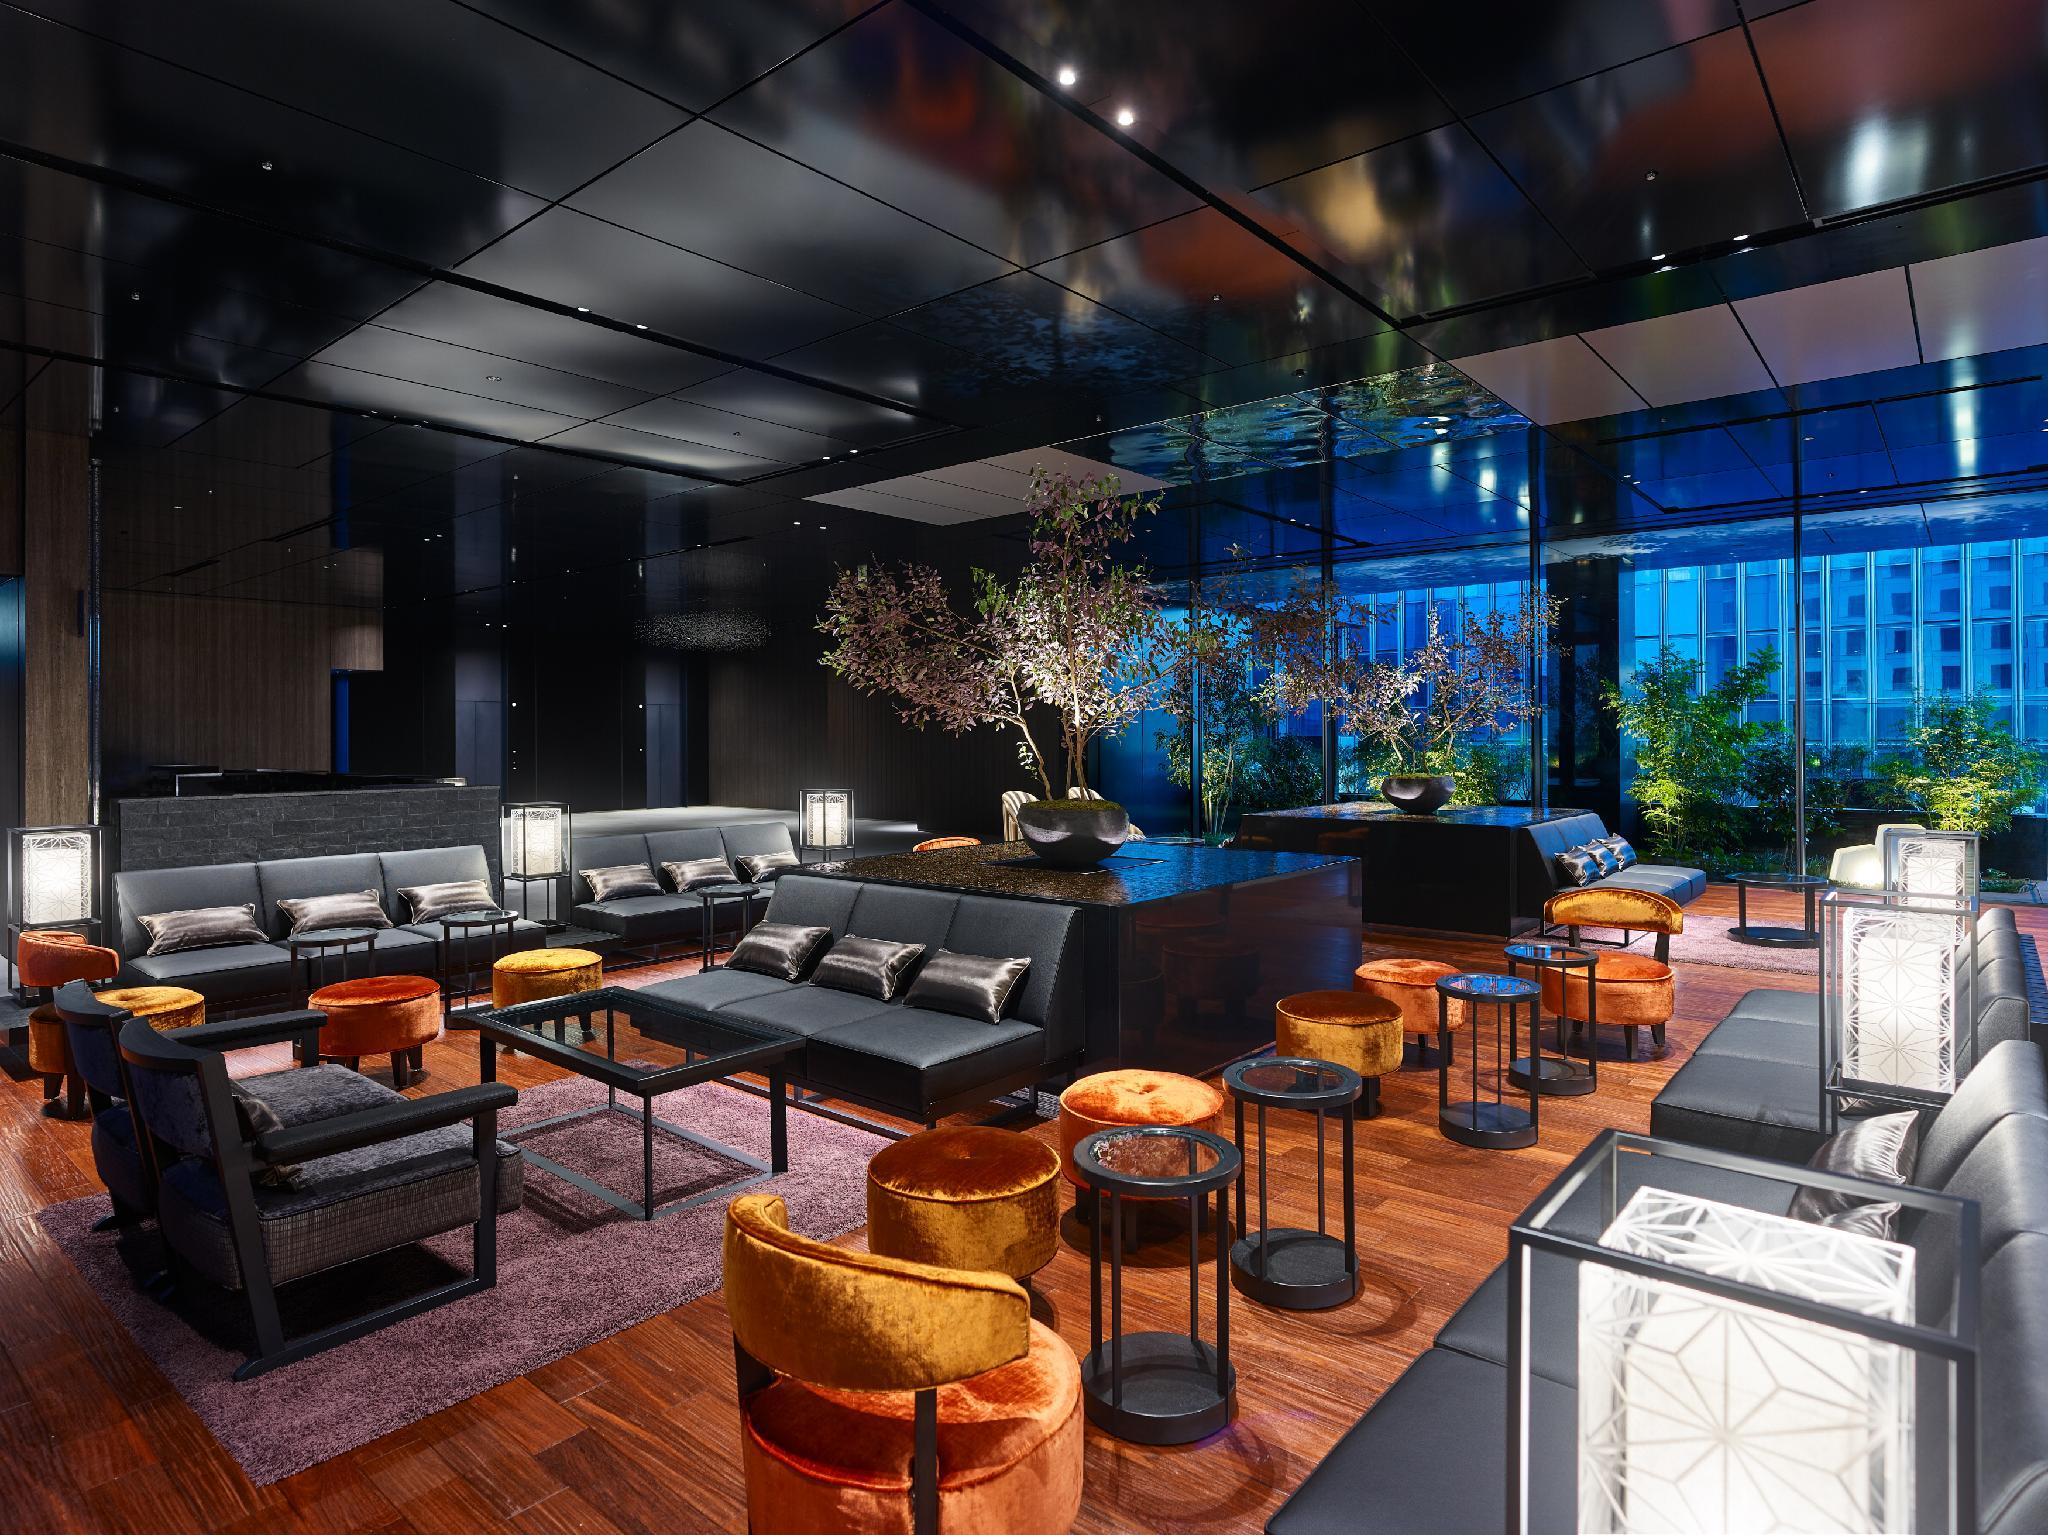 10 Best Tokyo Hotels Hd Photos Reviews Of Hotels In Tokyo